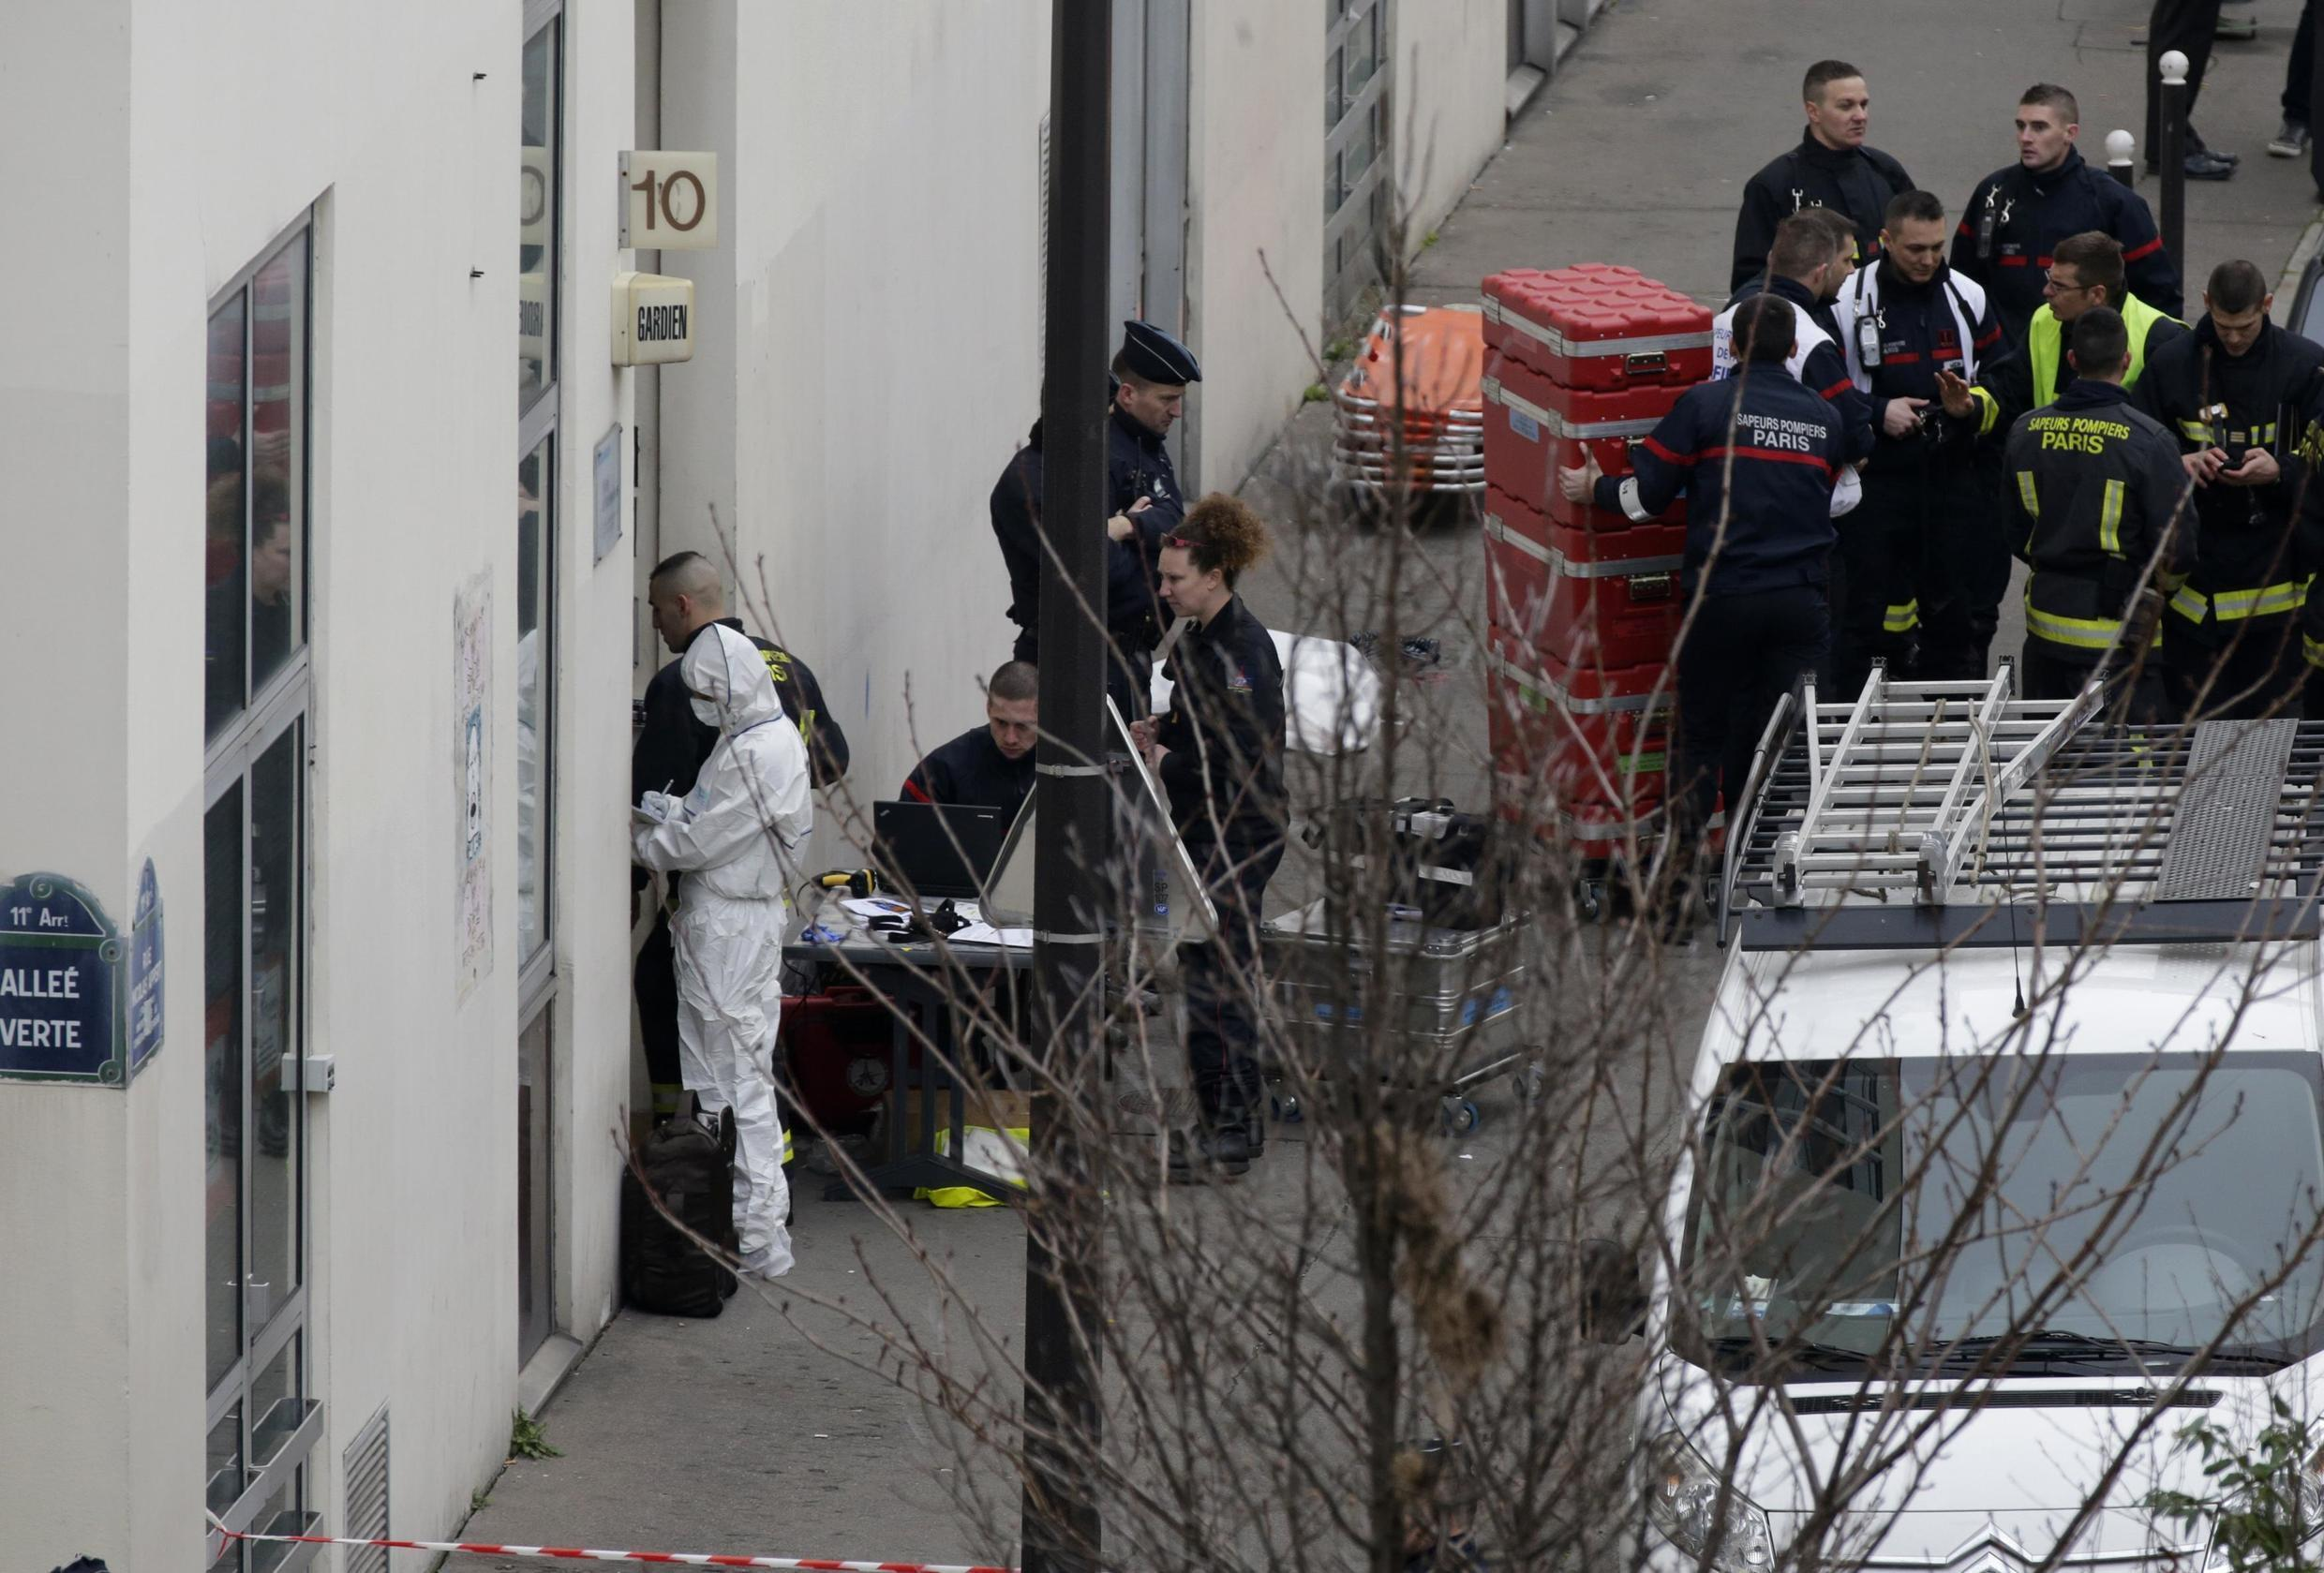 Police investigators and firefighters in front of the Paris offices of Charlie Hebdo after the attack